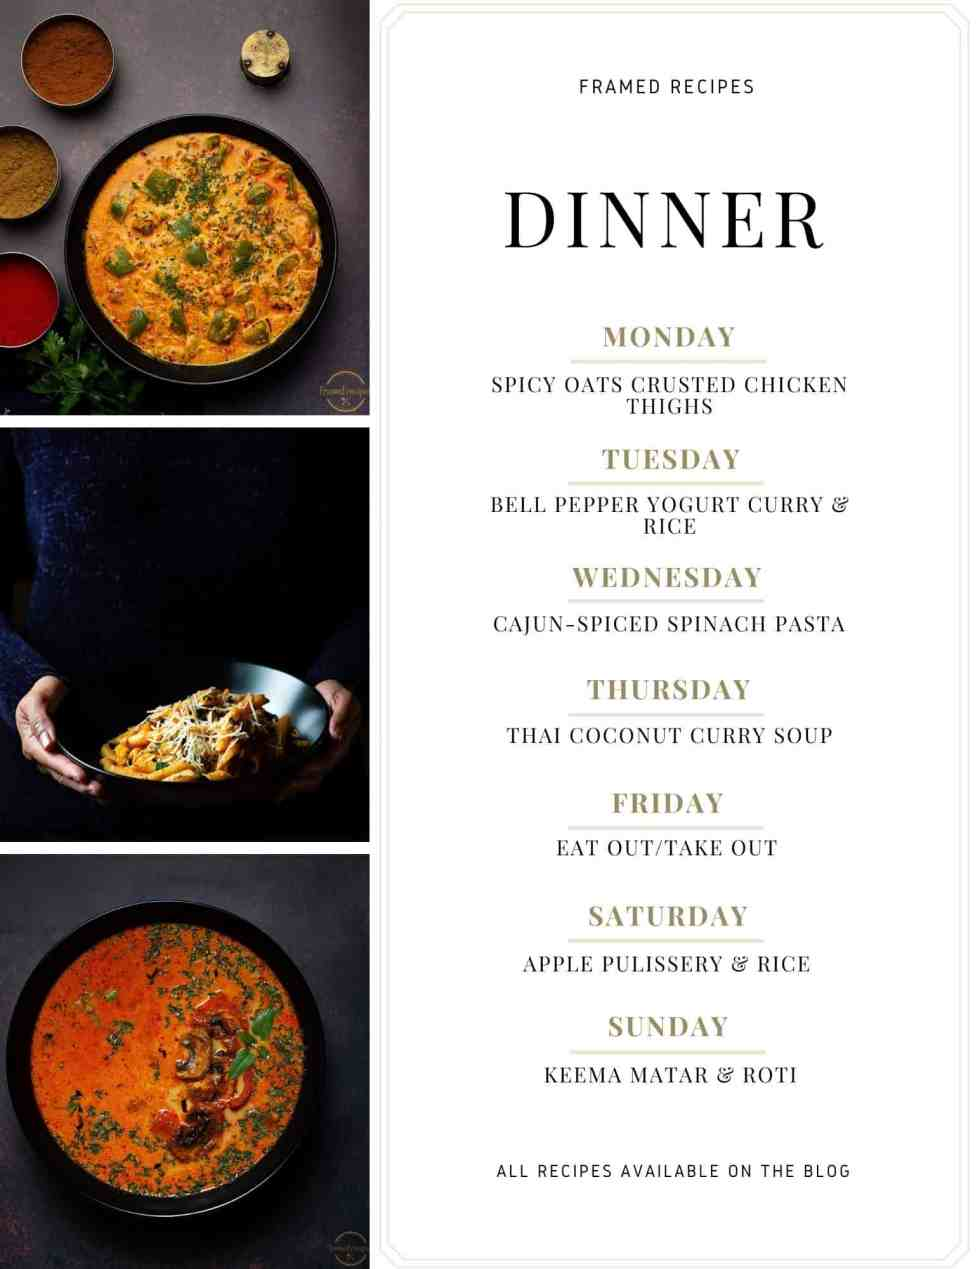 weekly meal plan menu  - list of different meal ideas for the week -  spicy oats crusted chicken thighs, bell pepper yogurt curry, cajun-piced spinach pasta, Thai coconut curry soup, eat out, apple pulissery and keema matar.